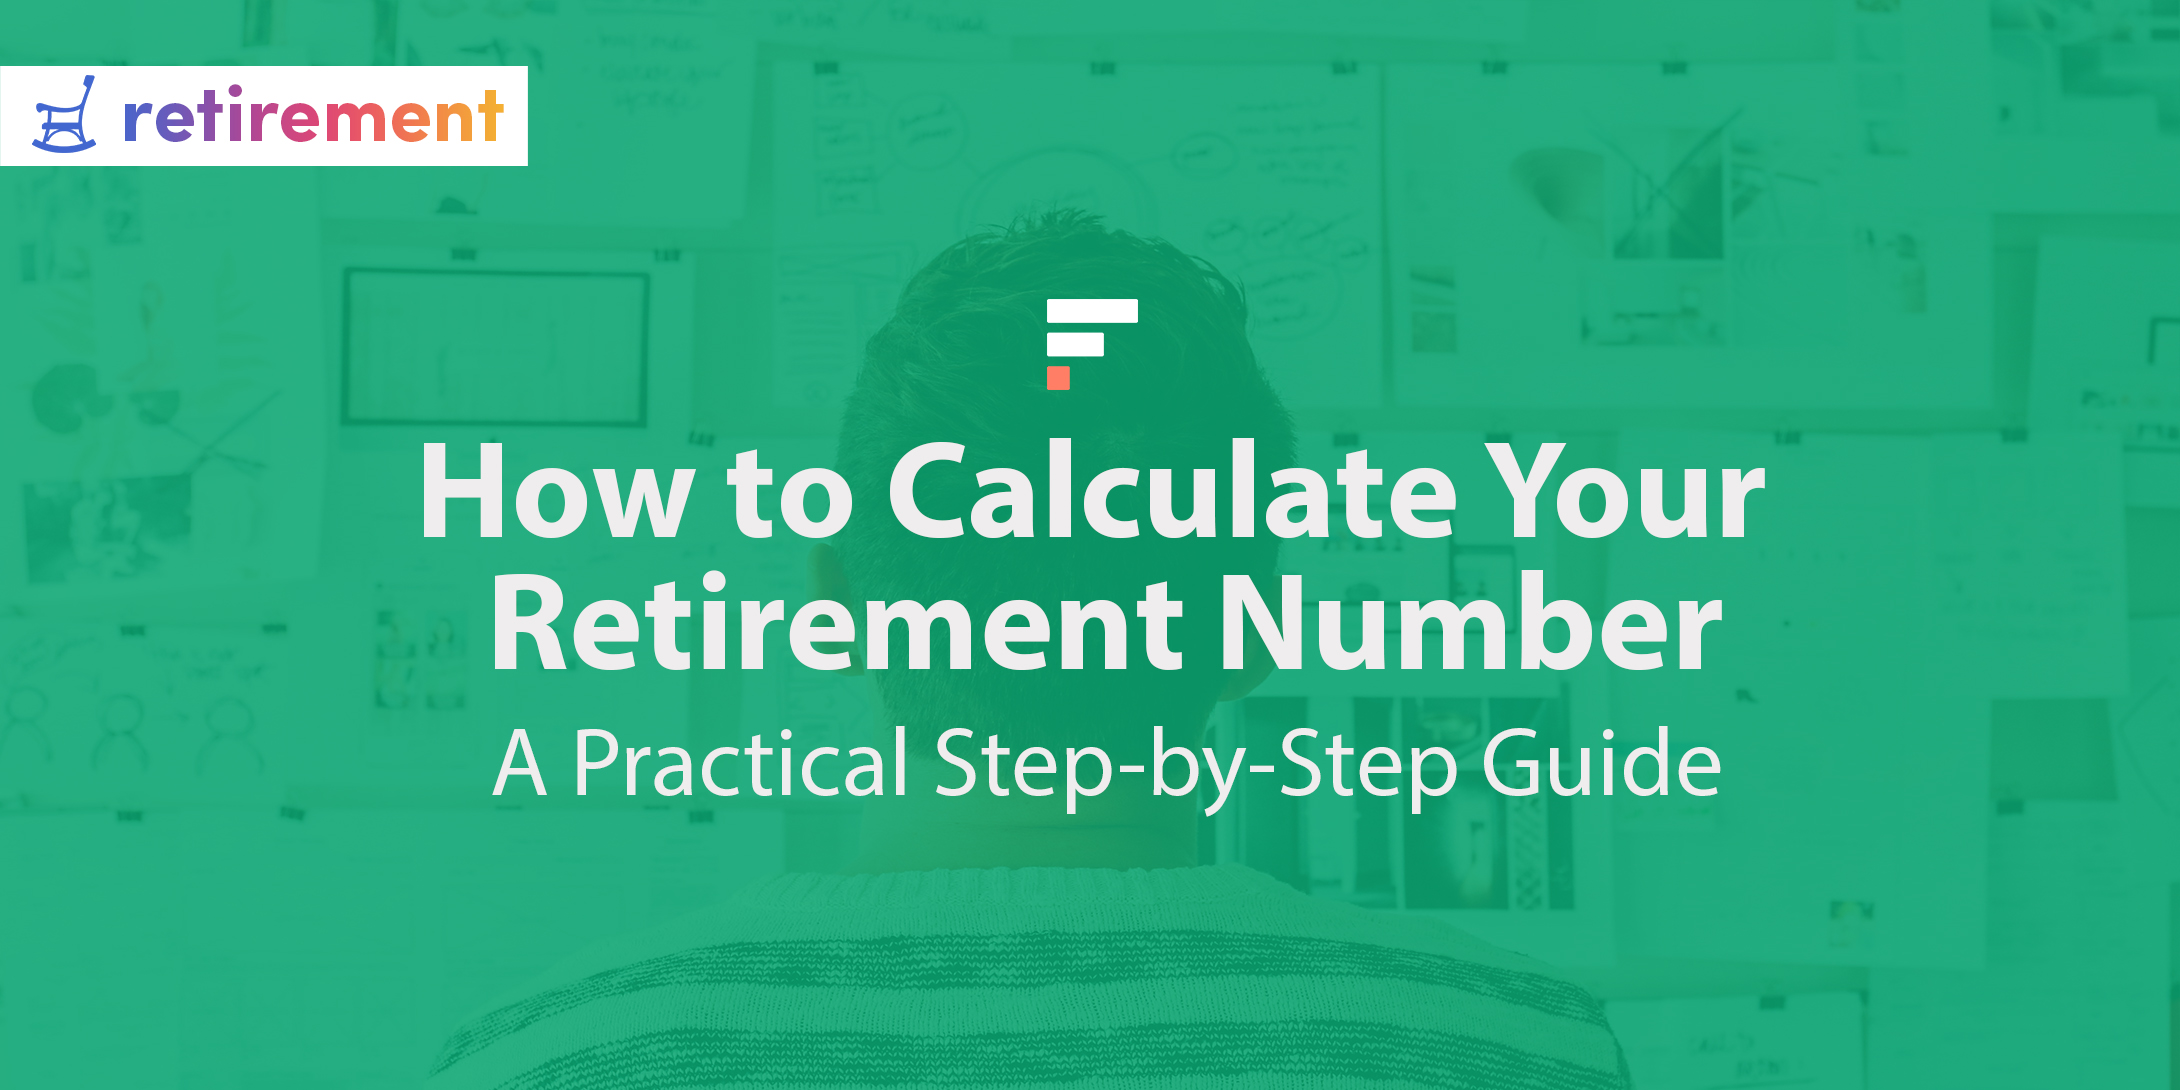 How to calculate your retirement number